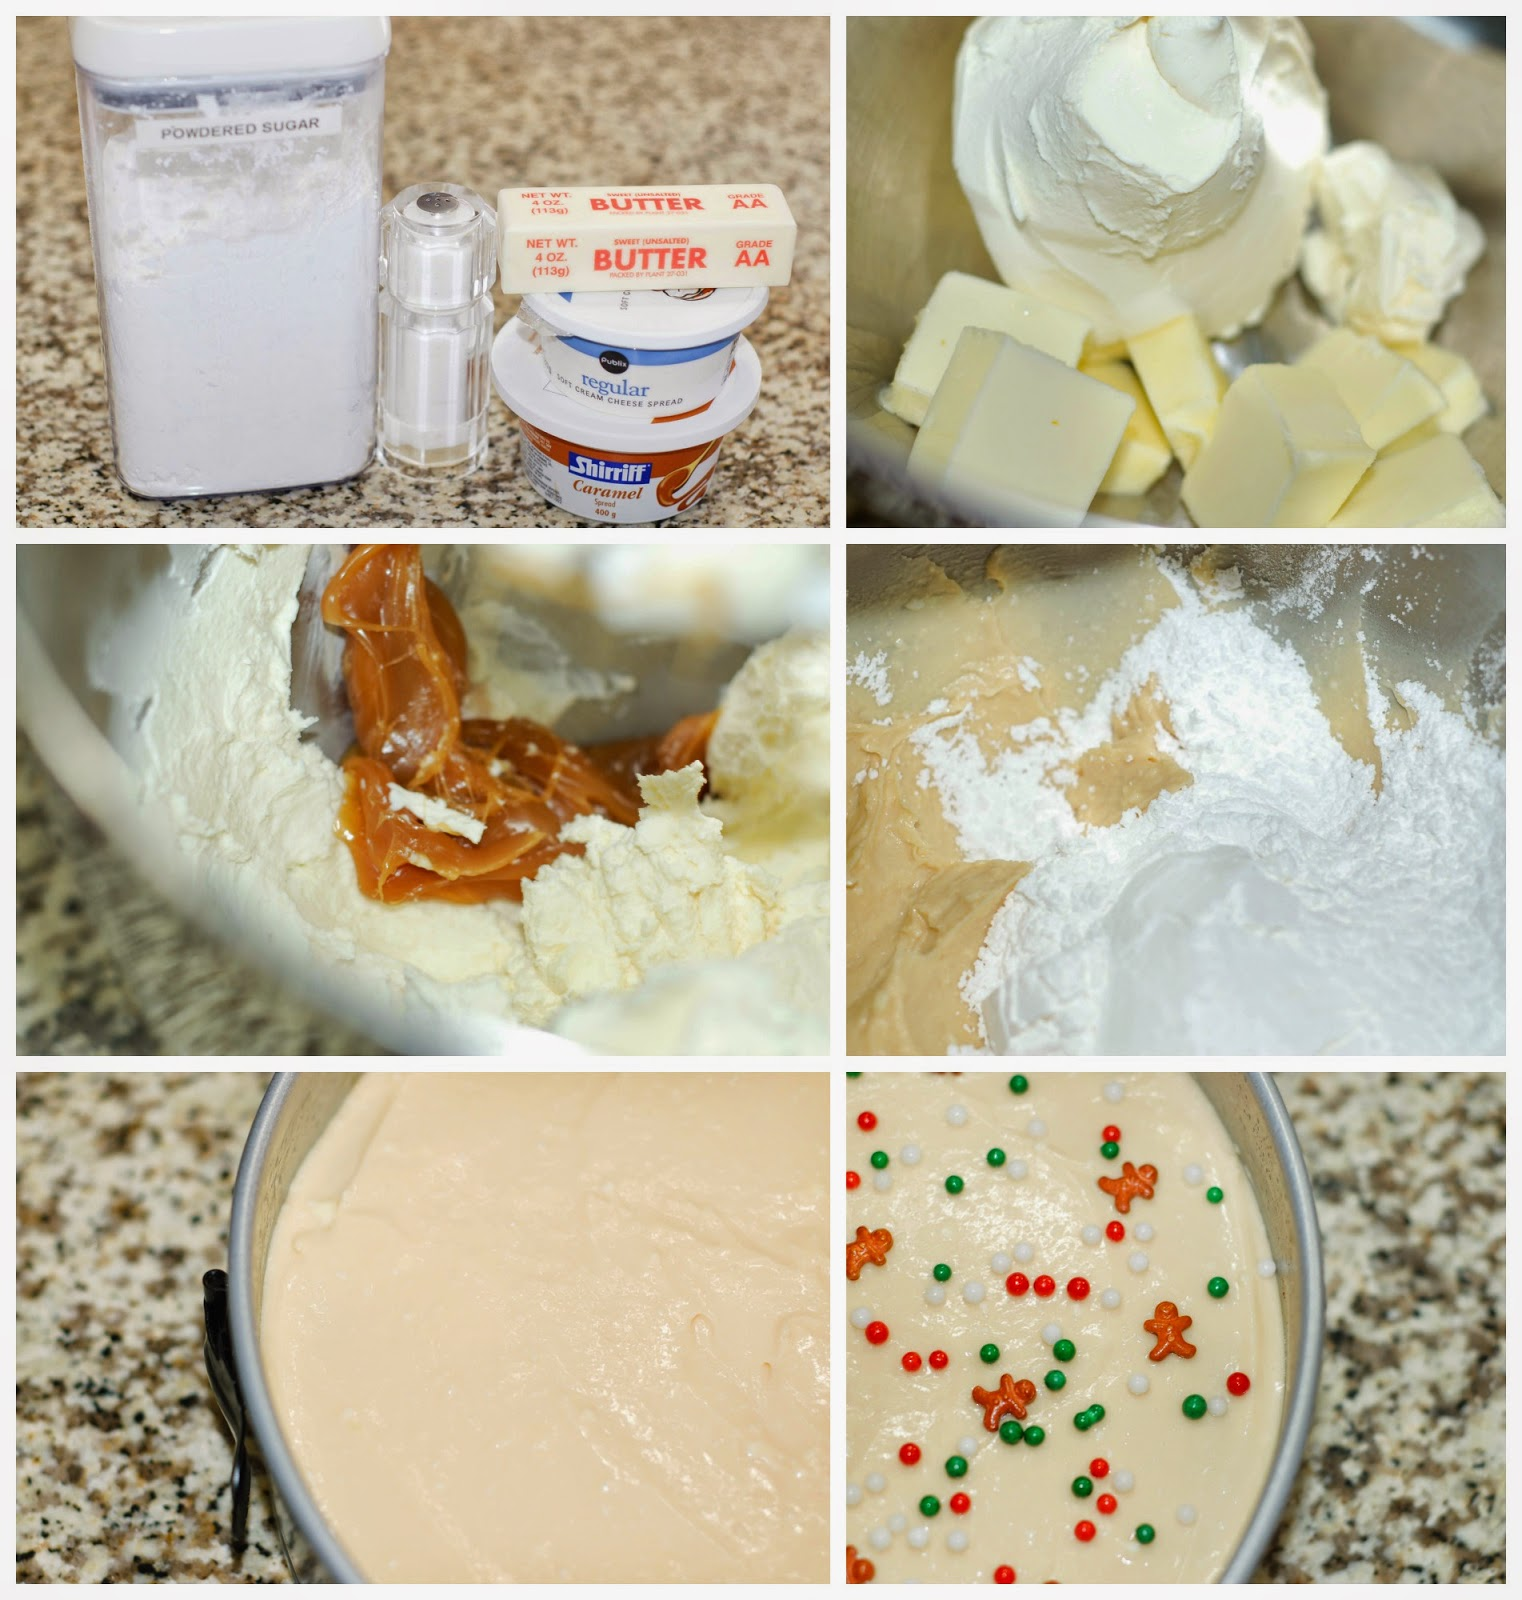 Making Salted Caramel Cream Cheese Frosting by The Sweet Chick